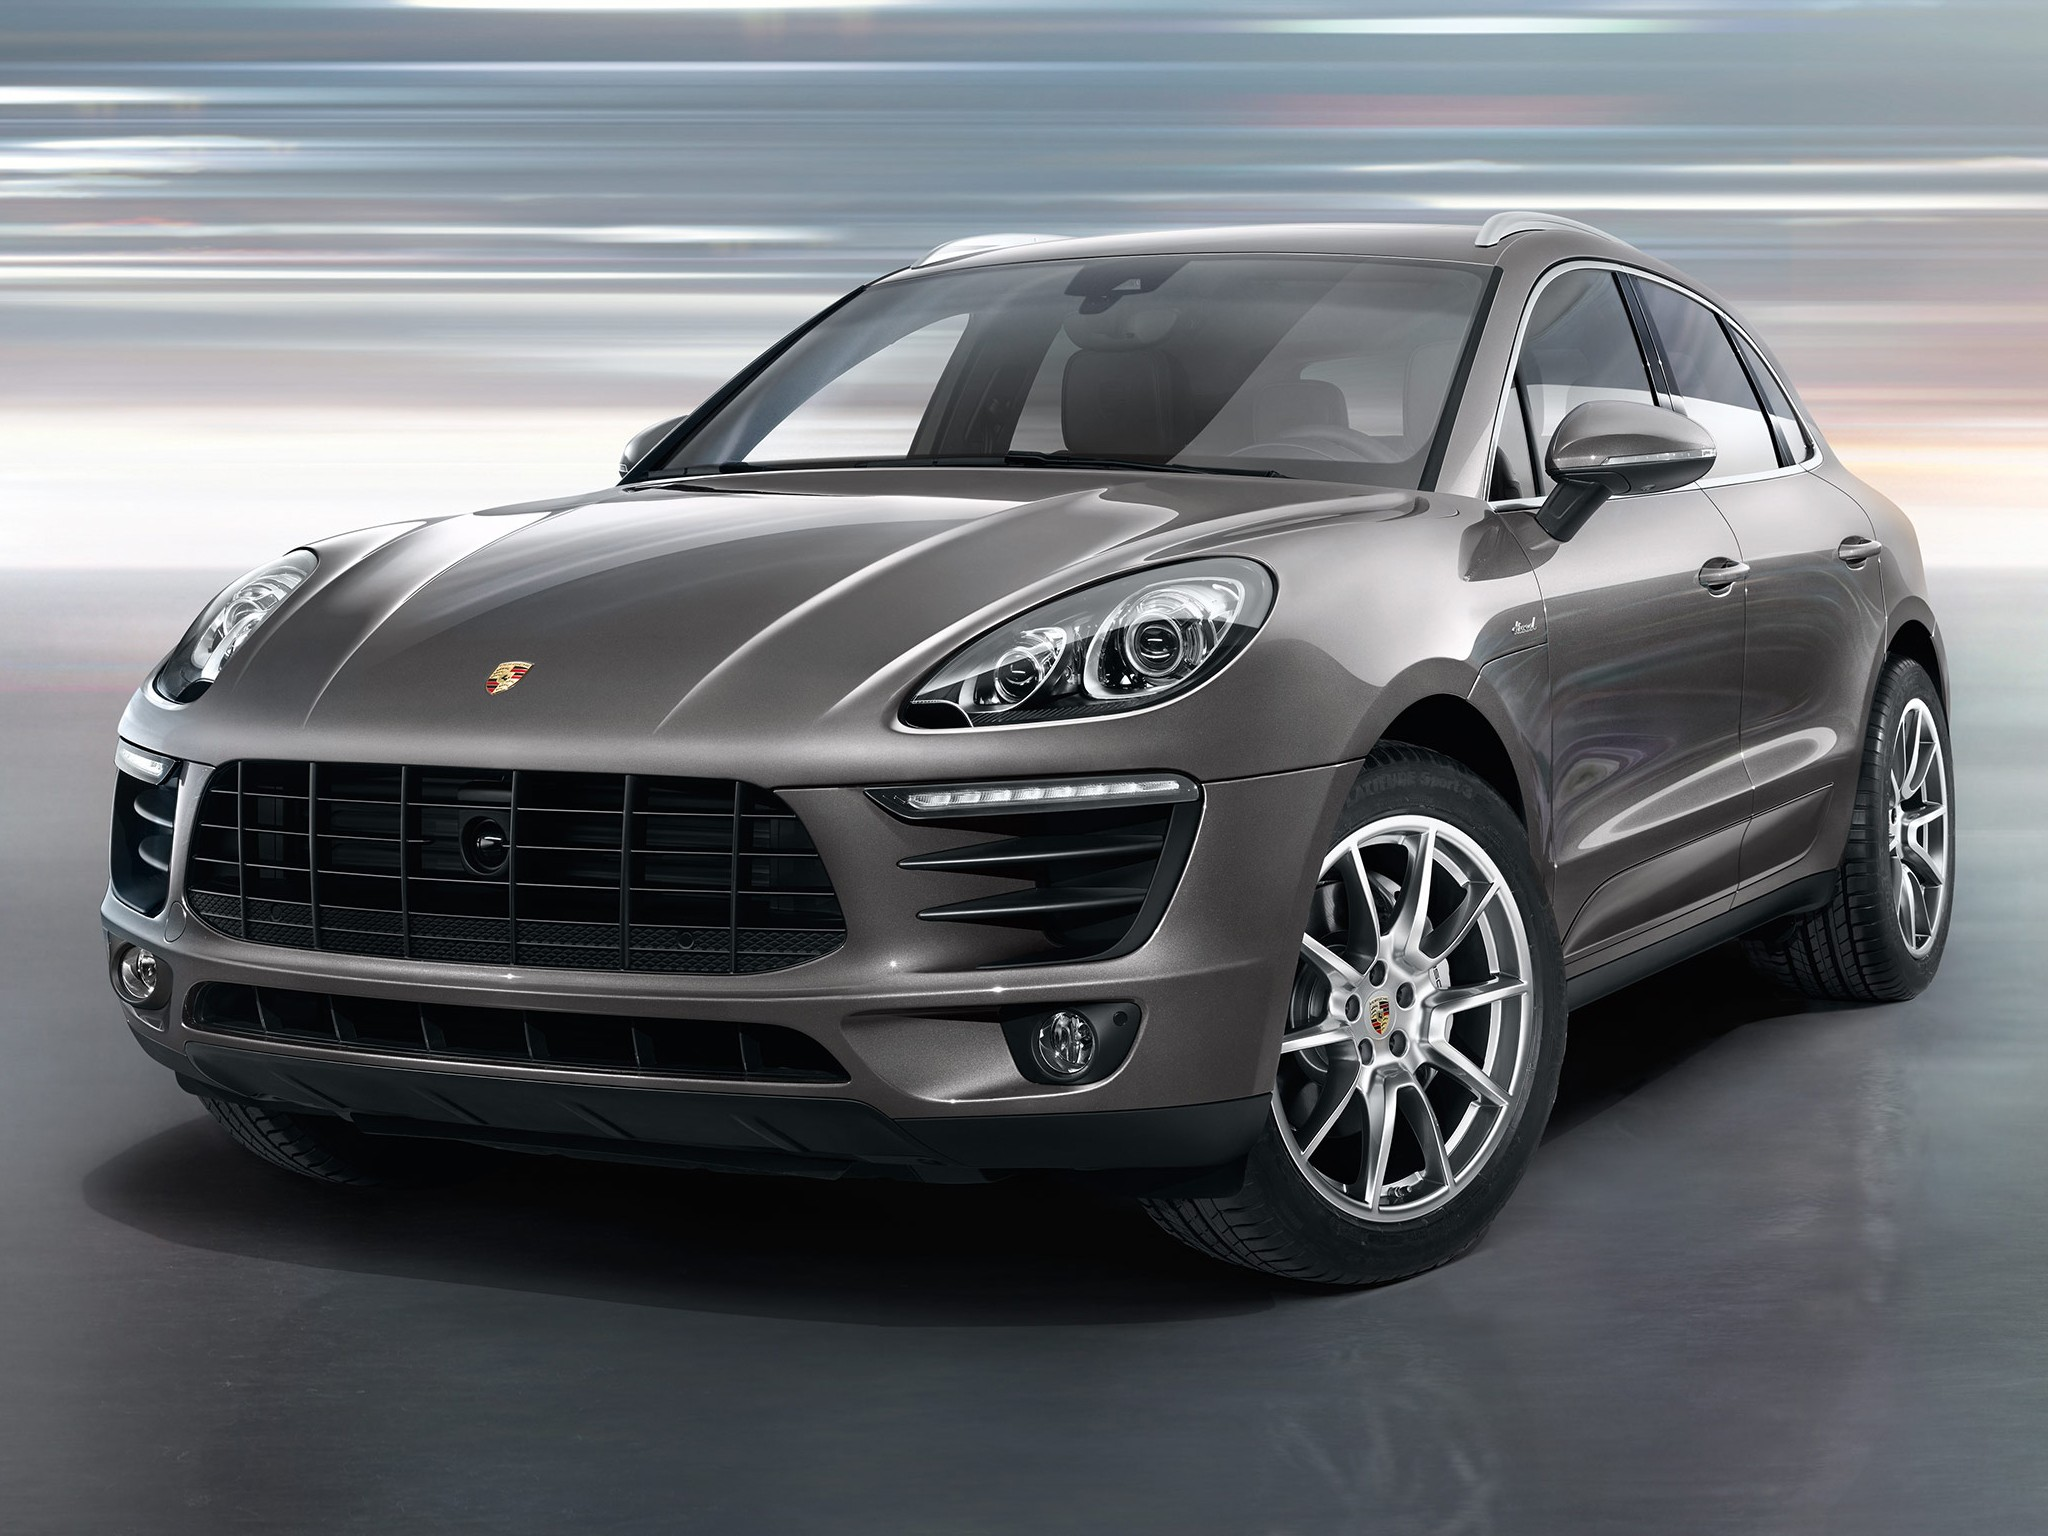 porsche macan s diesel specs 2014 2015 2016 2017 2018 autoevolution. Black Bedroom Furniture Sets. Home Design Ideas